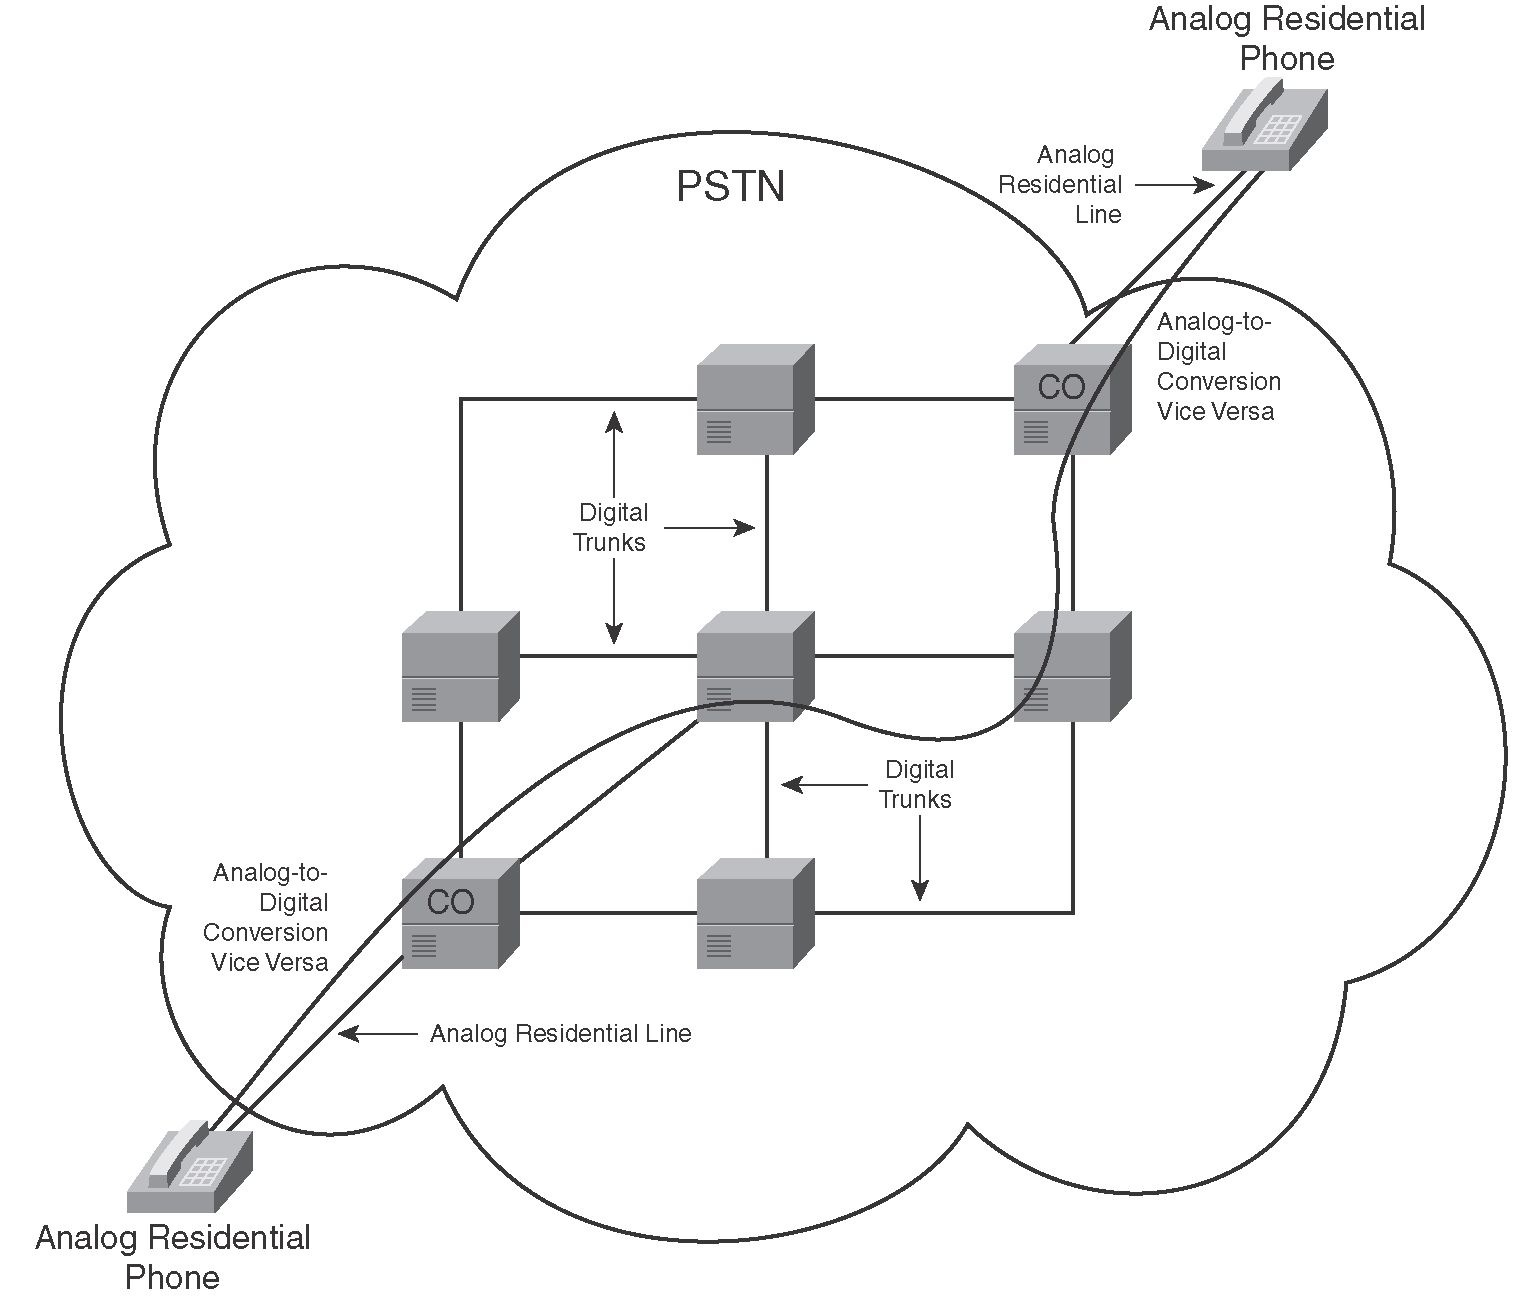 encapsulating voice packets cisco voip implementations rh what when how com Schematic Diagram Basic Electronic Circuits